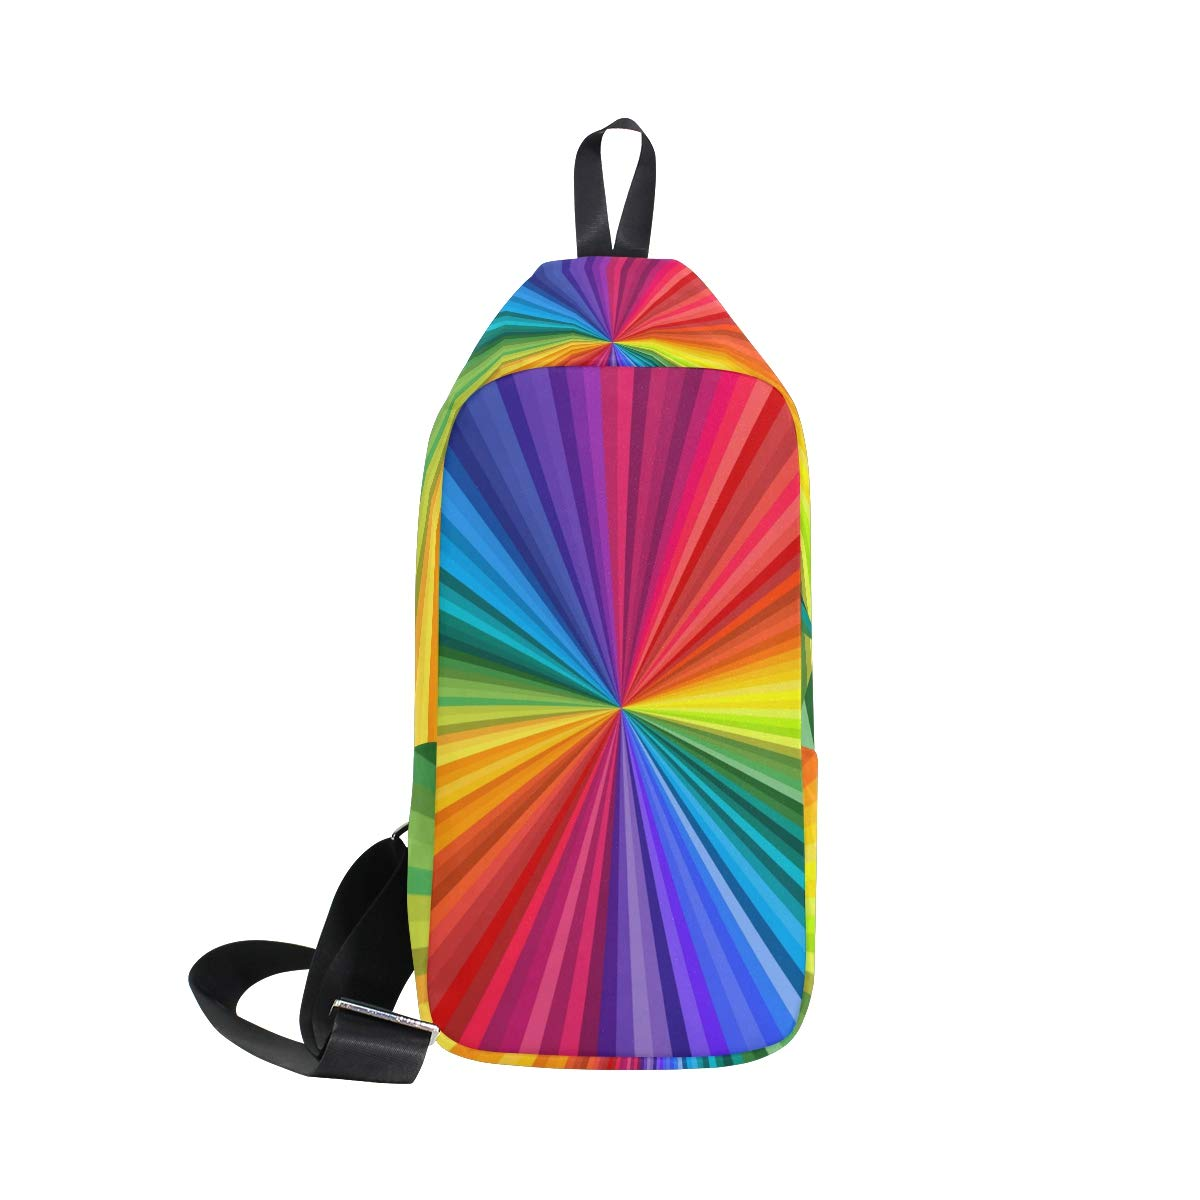 TFONE Tie Dye Pattern Crossbody Bag Lightweight Chest Shoulder Messenger Pack Backpack Sling Bag